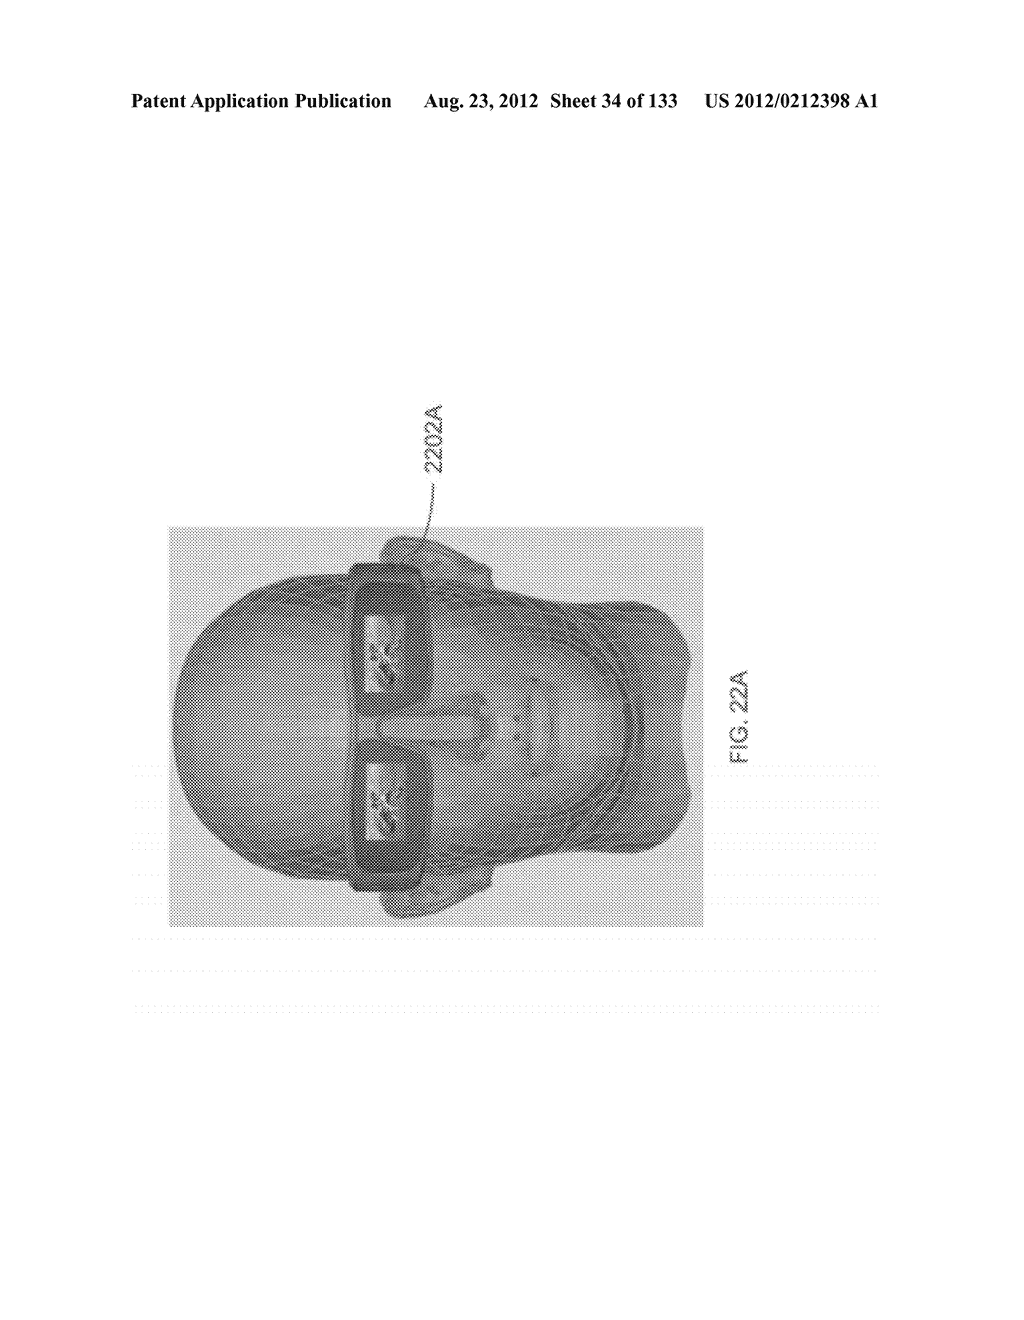 SEE-THROUGH NEAR-EYE DISPLAY GLASSES INCLUDING A PARTIALLY REFLECTIVE,     PARTIALLY TRANSMITTING OPTICAL ELEMENT - diagram, schematic, and image 35